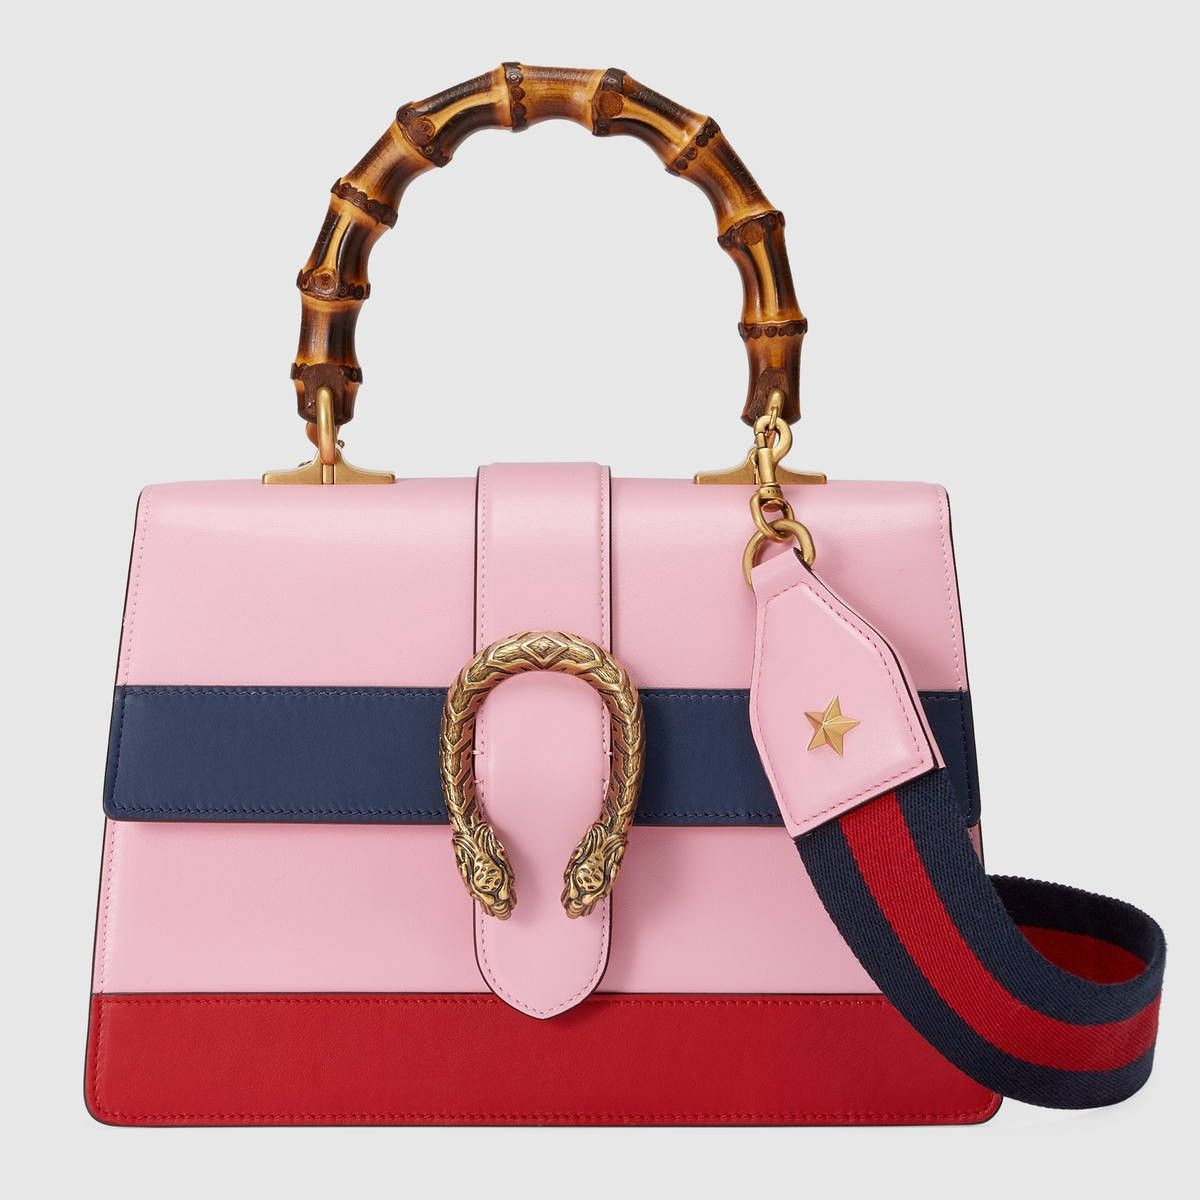 5cf4d3716784 GUCCI Dionysus leather top handle bag - pink/blue/hibiscus red leather. # gucci #bags #leather #lining #shoulder bags #linen #hand bags #cotton #